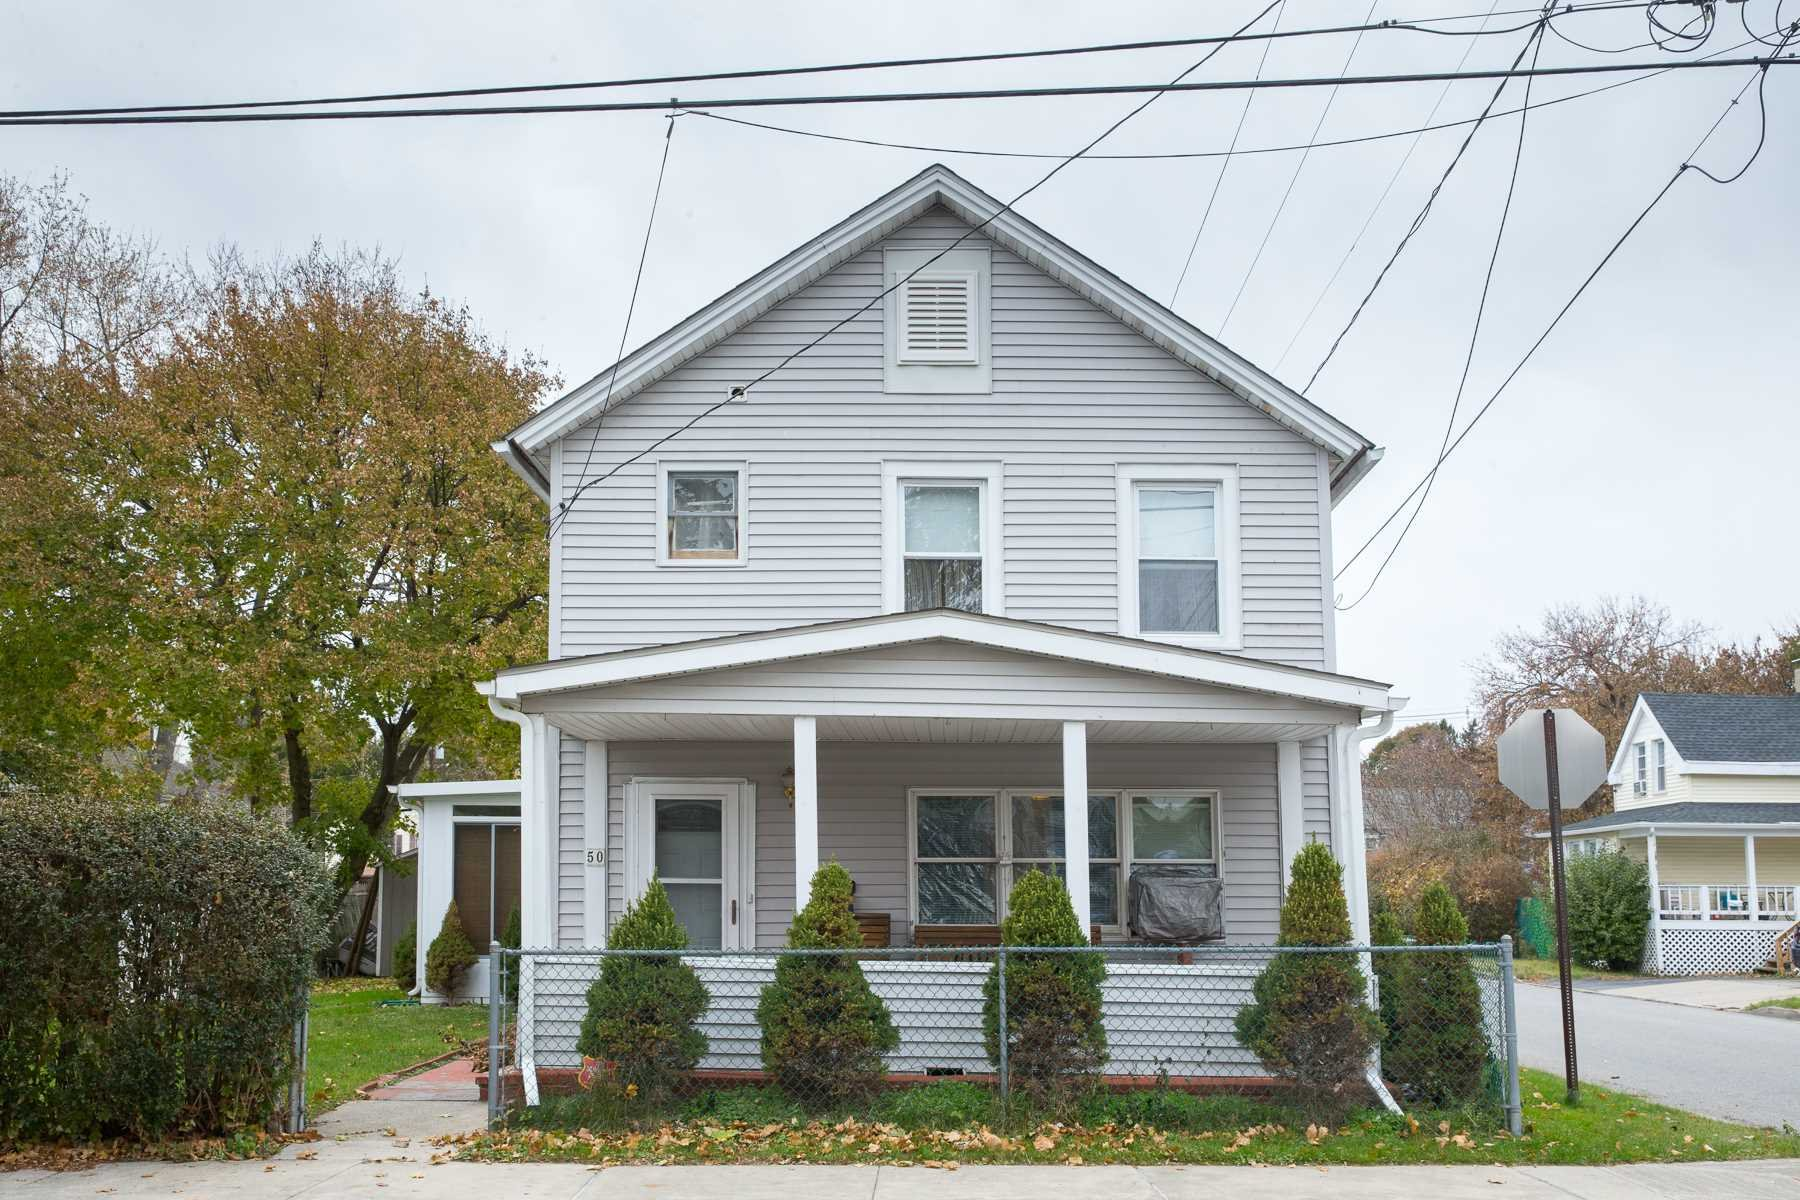 Single Family Home for Sale at 50 N.CHESTNUT 50 N.CHESTNUT Beacon, New York 12508 United States